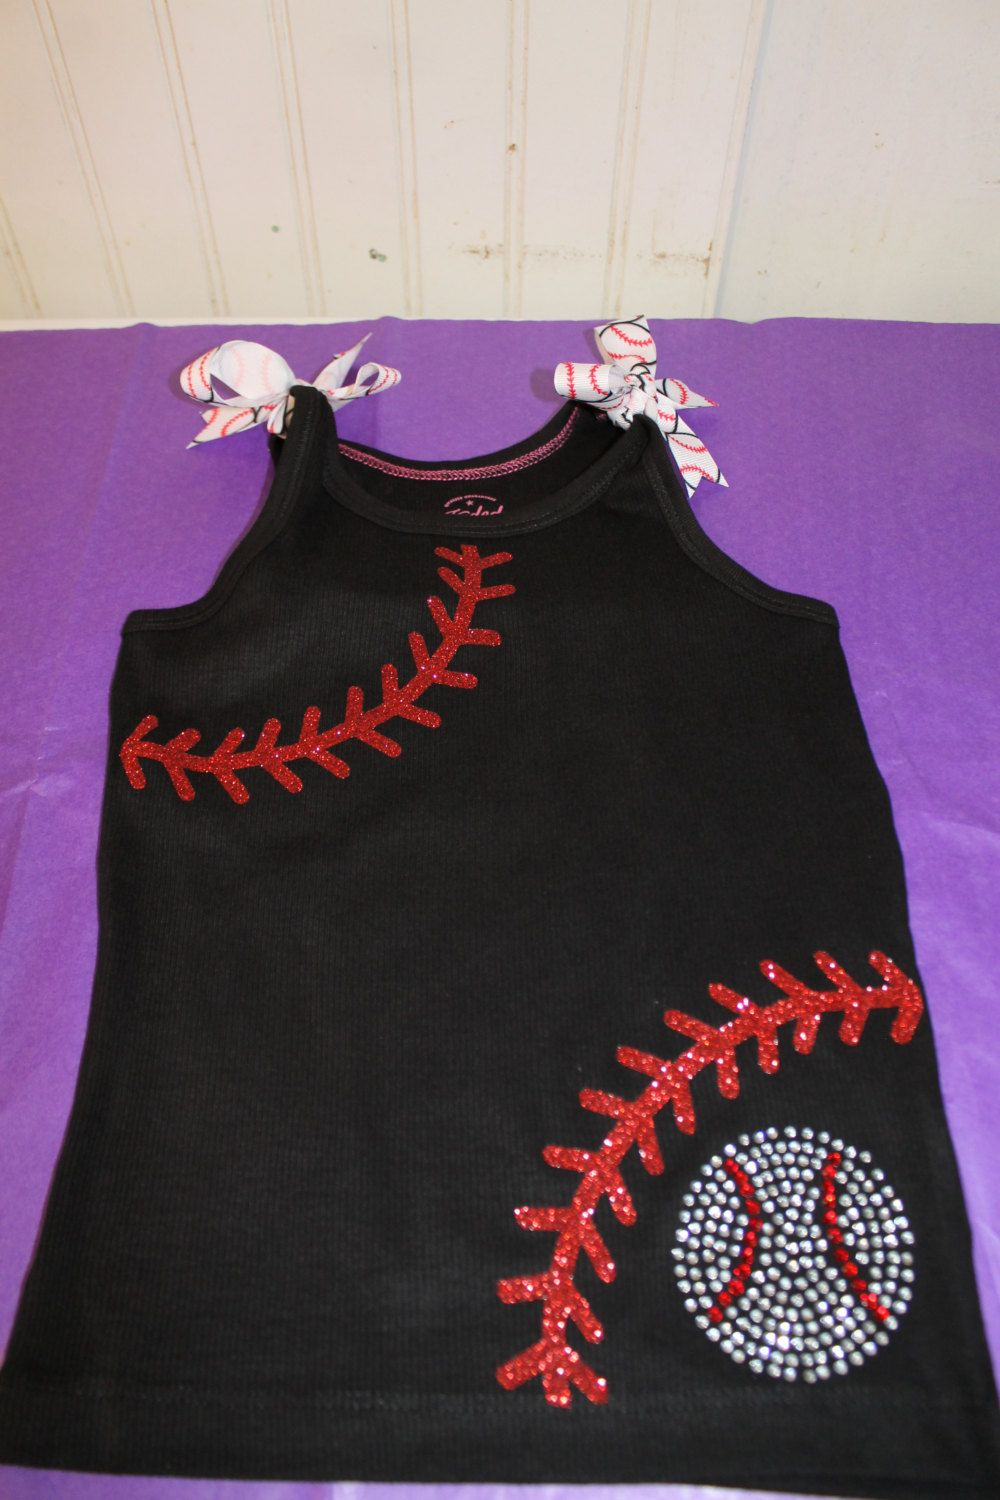 Shirt design with laces - Girls Laces Glitter And Bling Baseball Tee Or Tank Customized In Your Team Colors